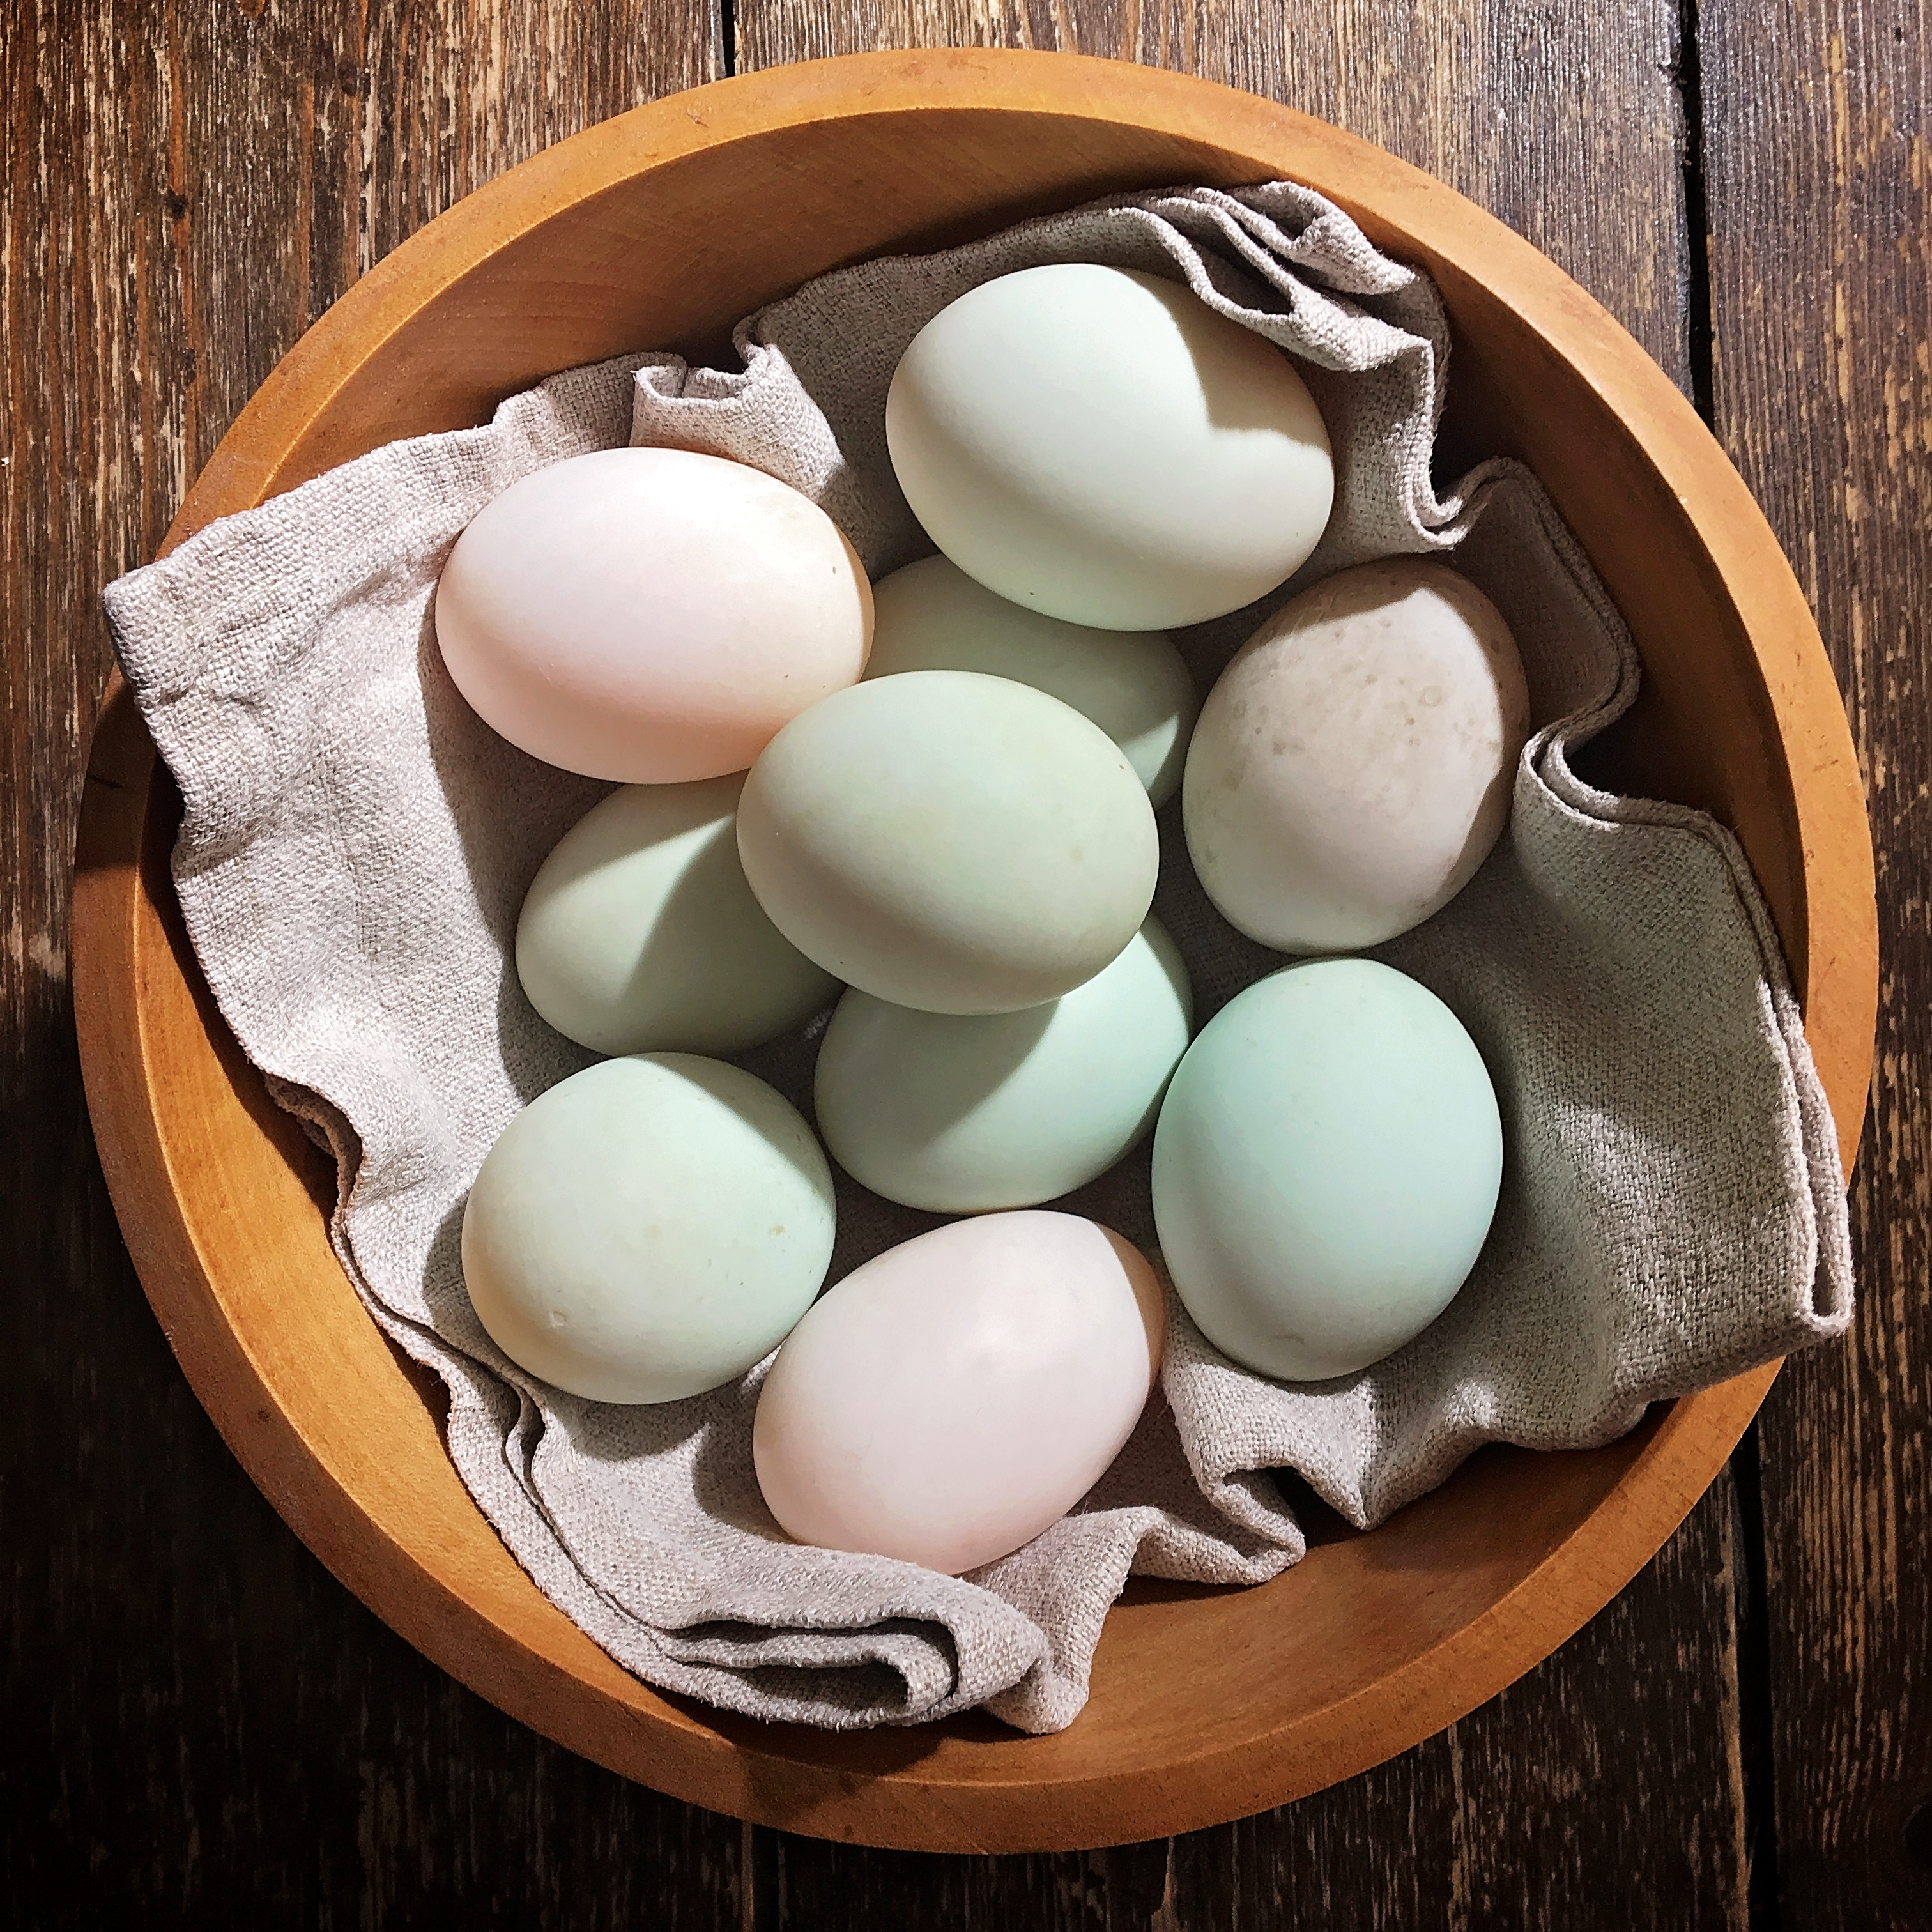 Blue and pinkish duck eggs